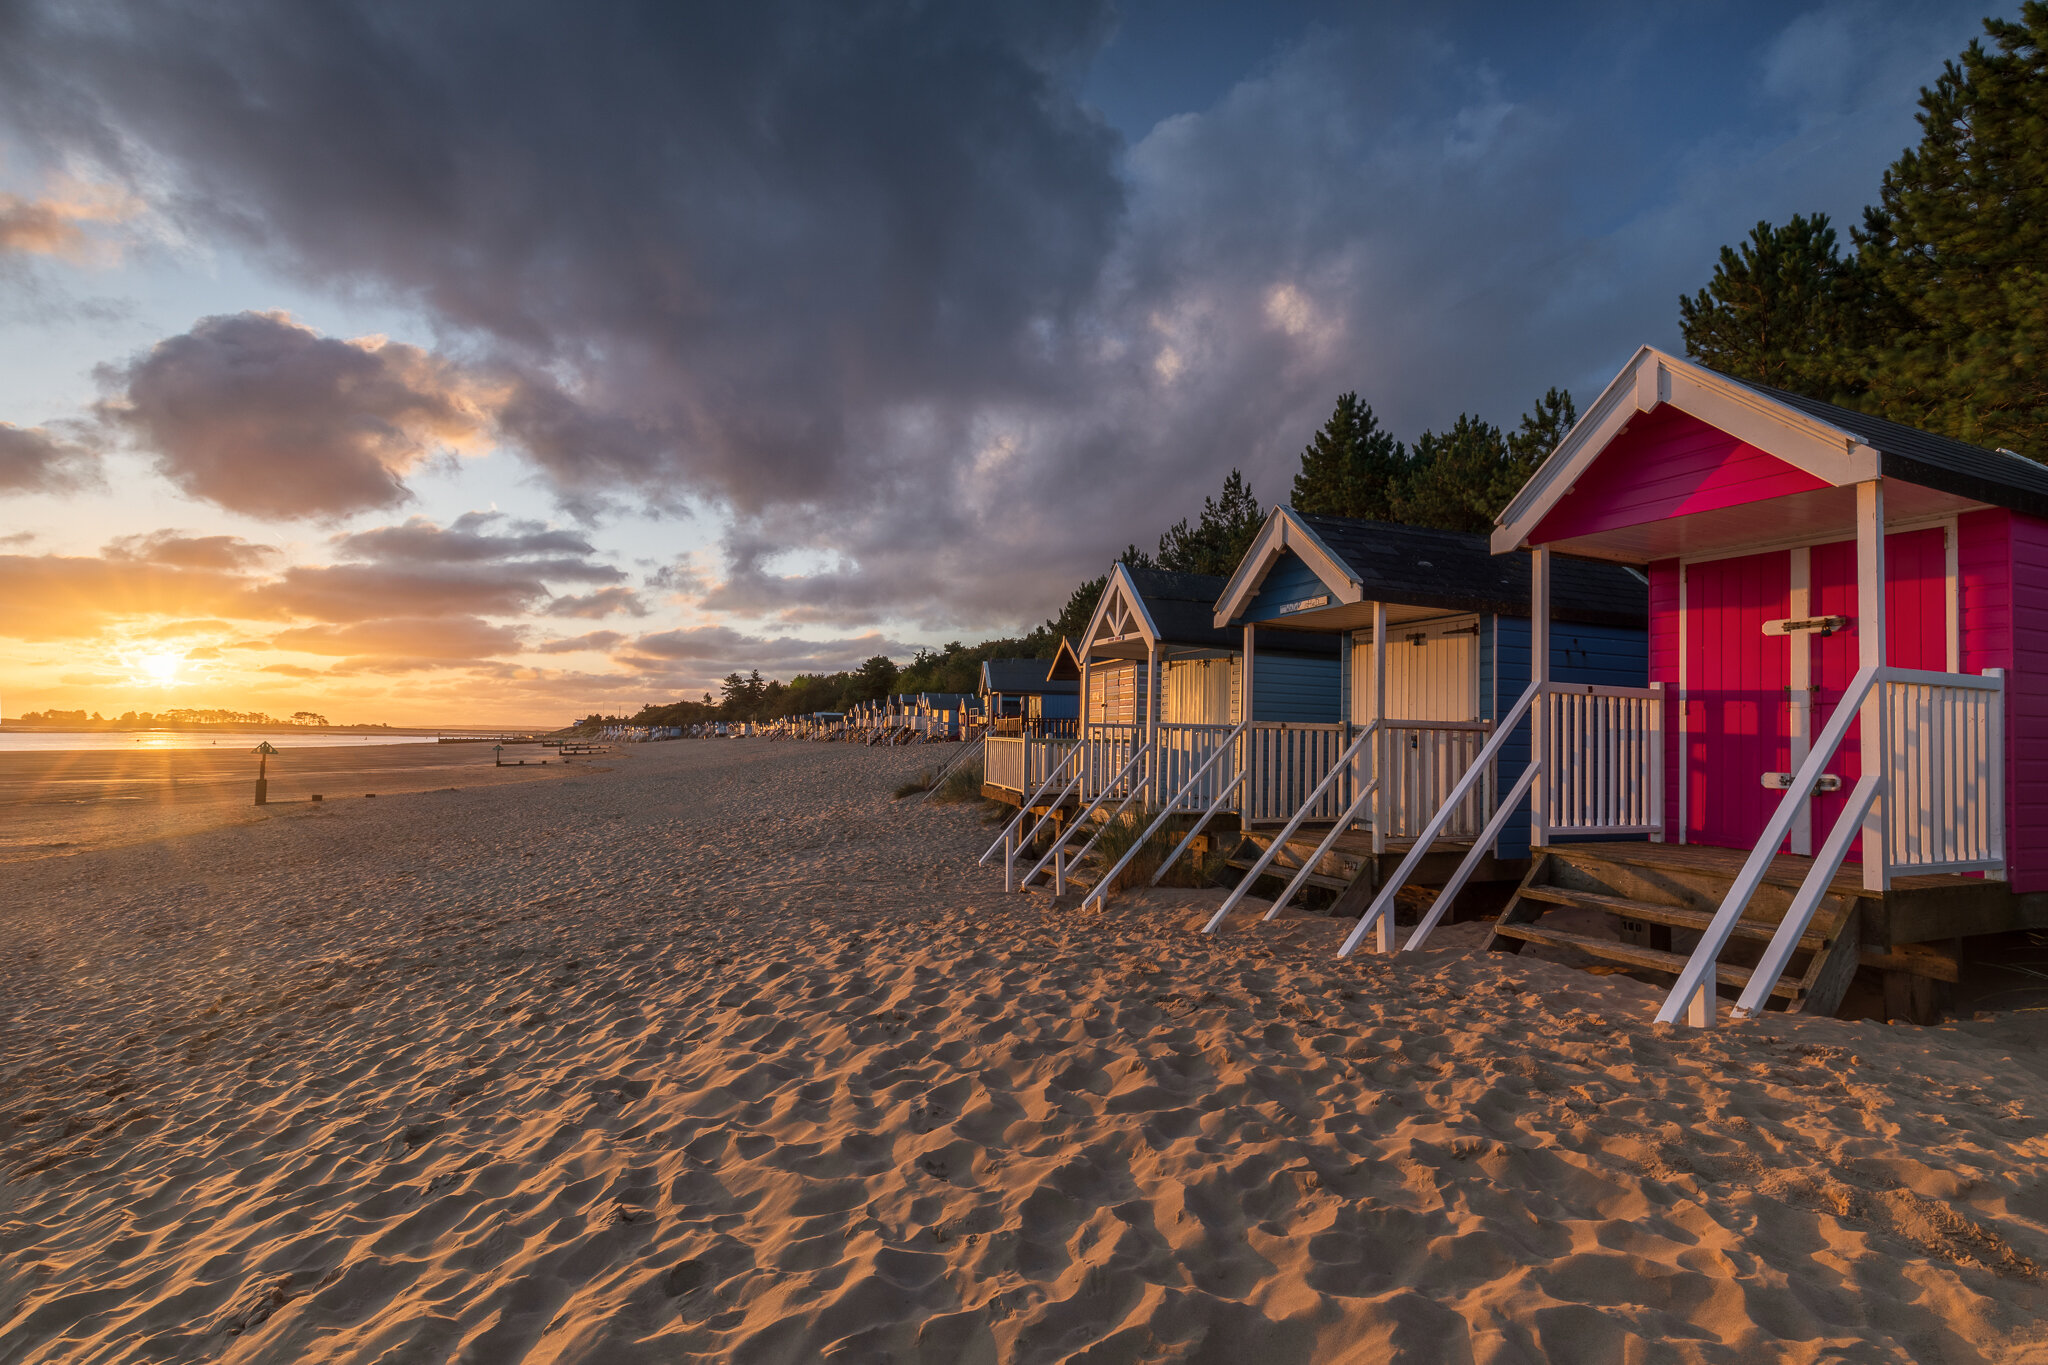 Sunrise at Wells-next-the-Sea, Norfolk